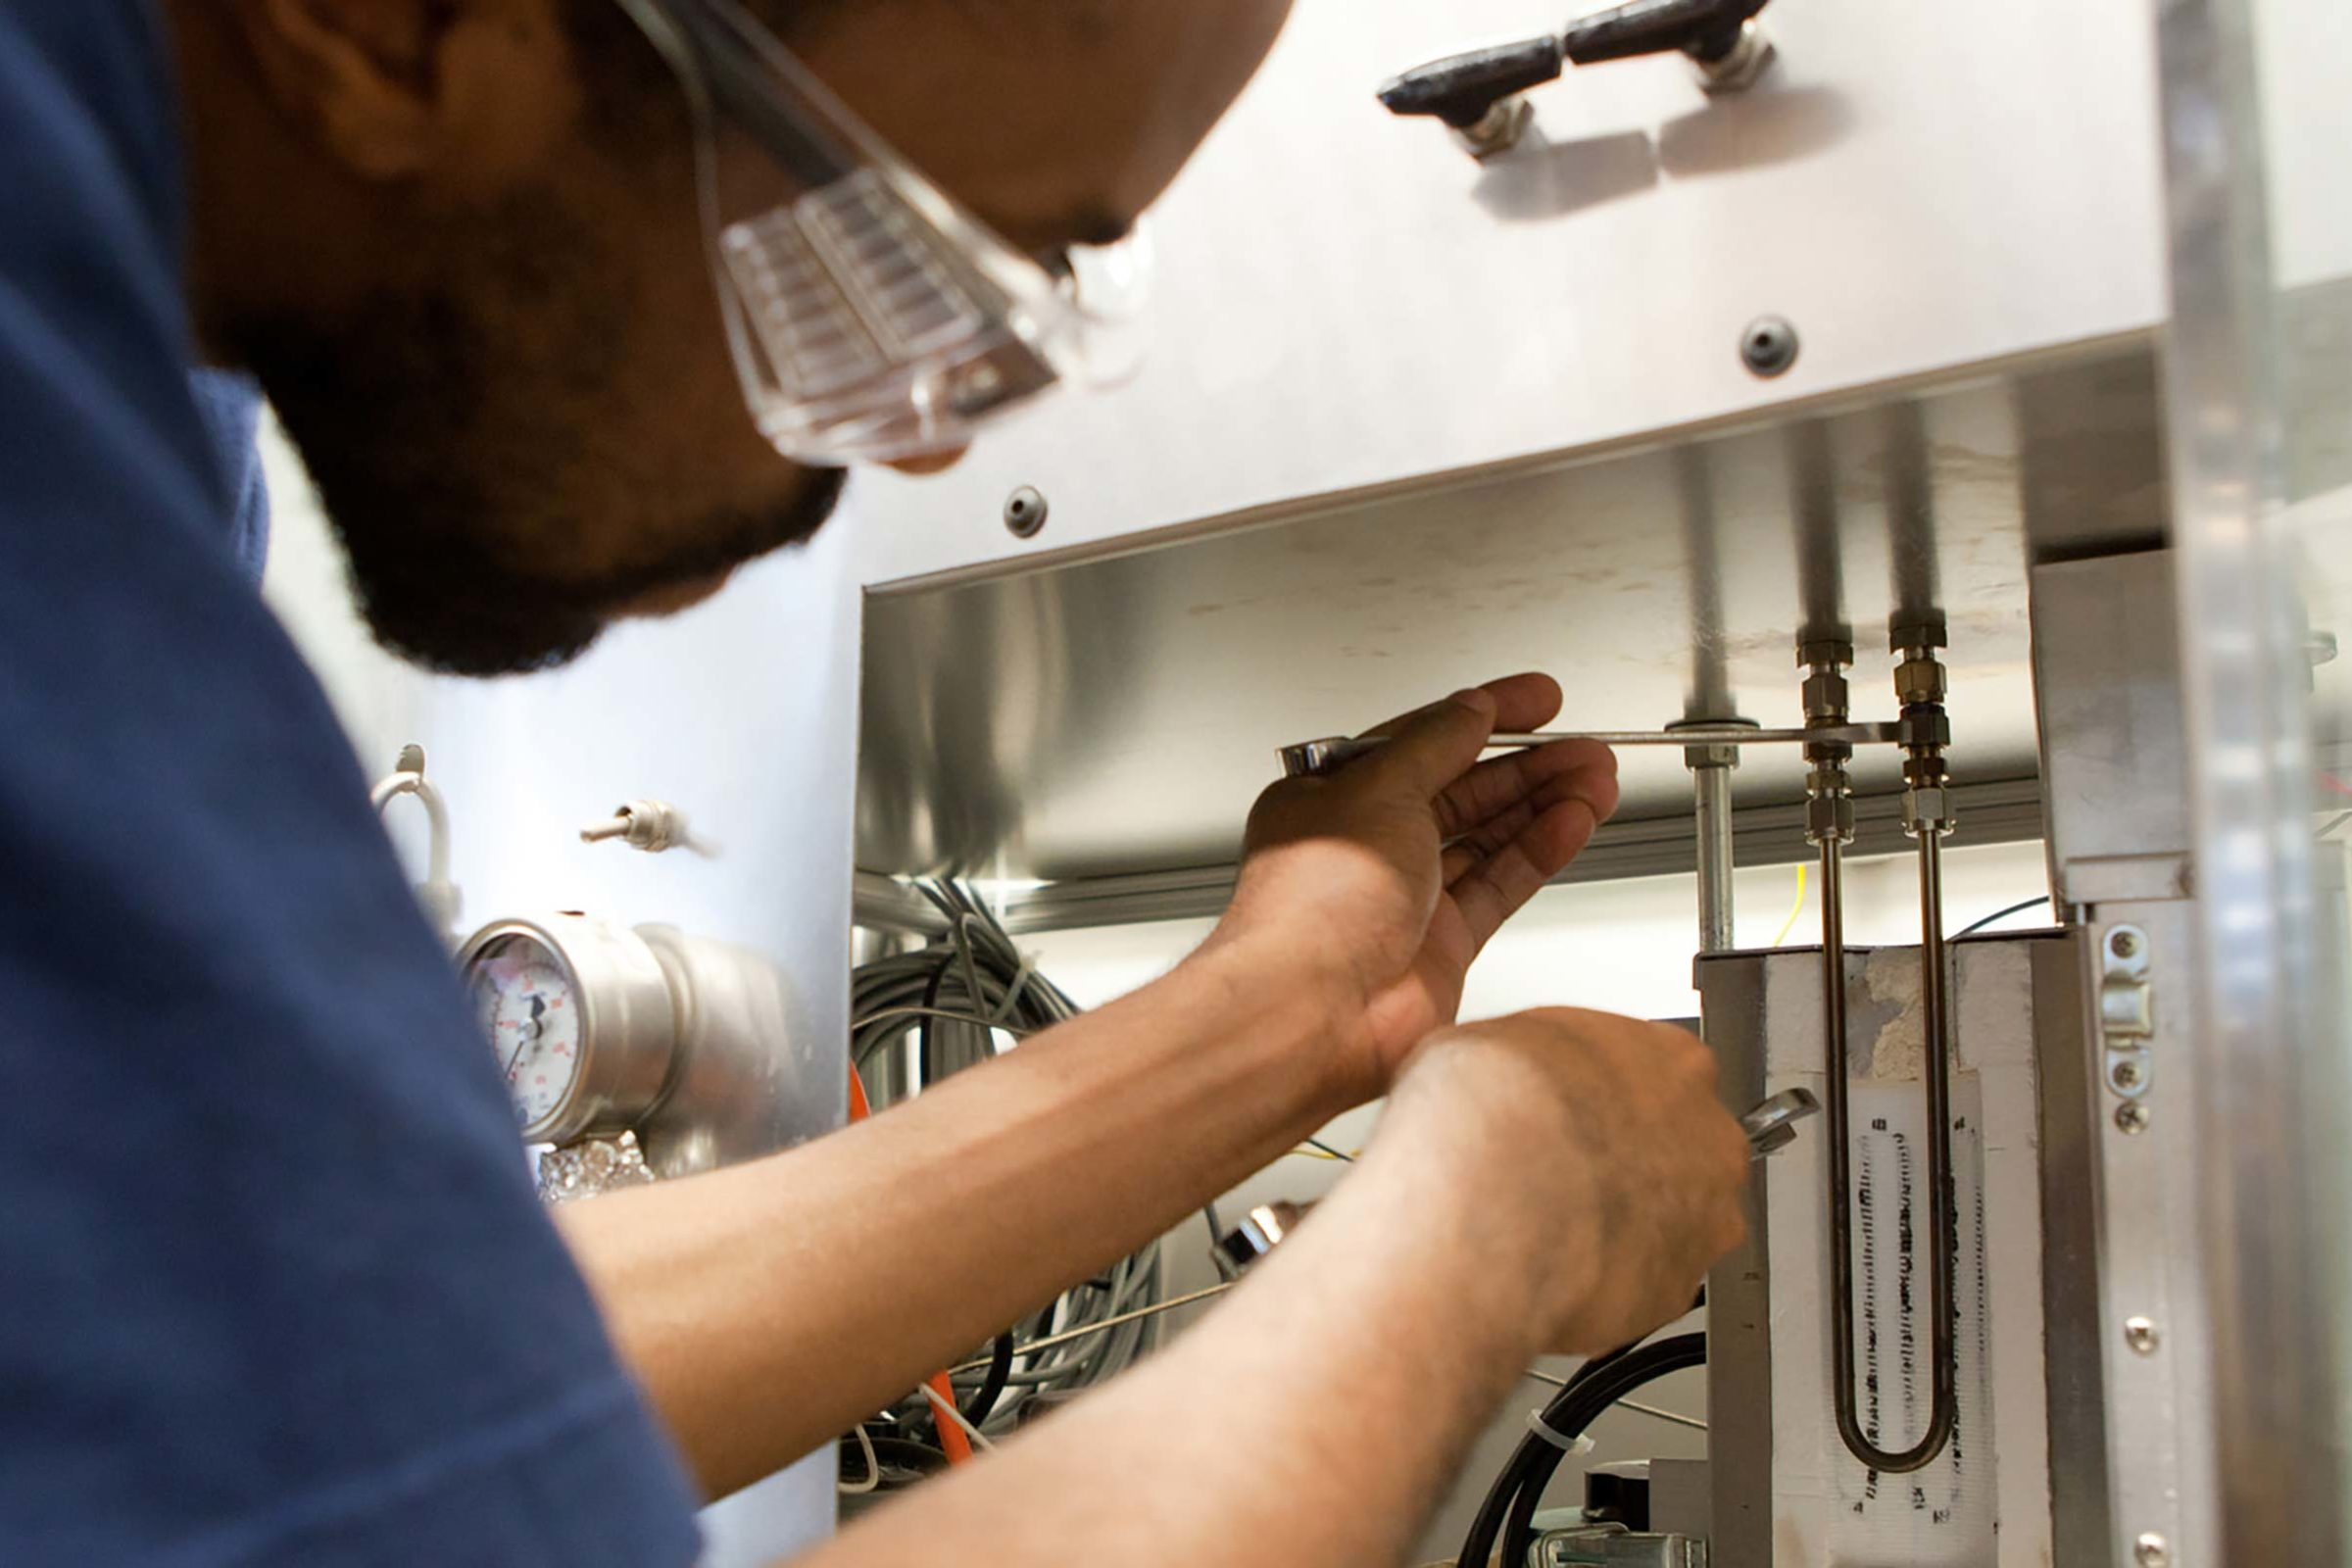 A graduate student works in a chemical engineering lab